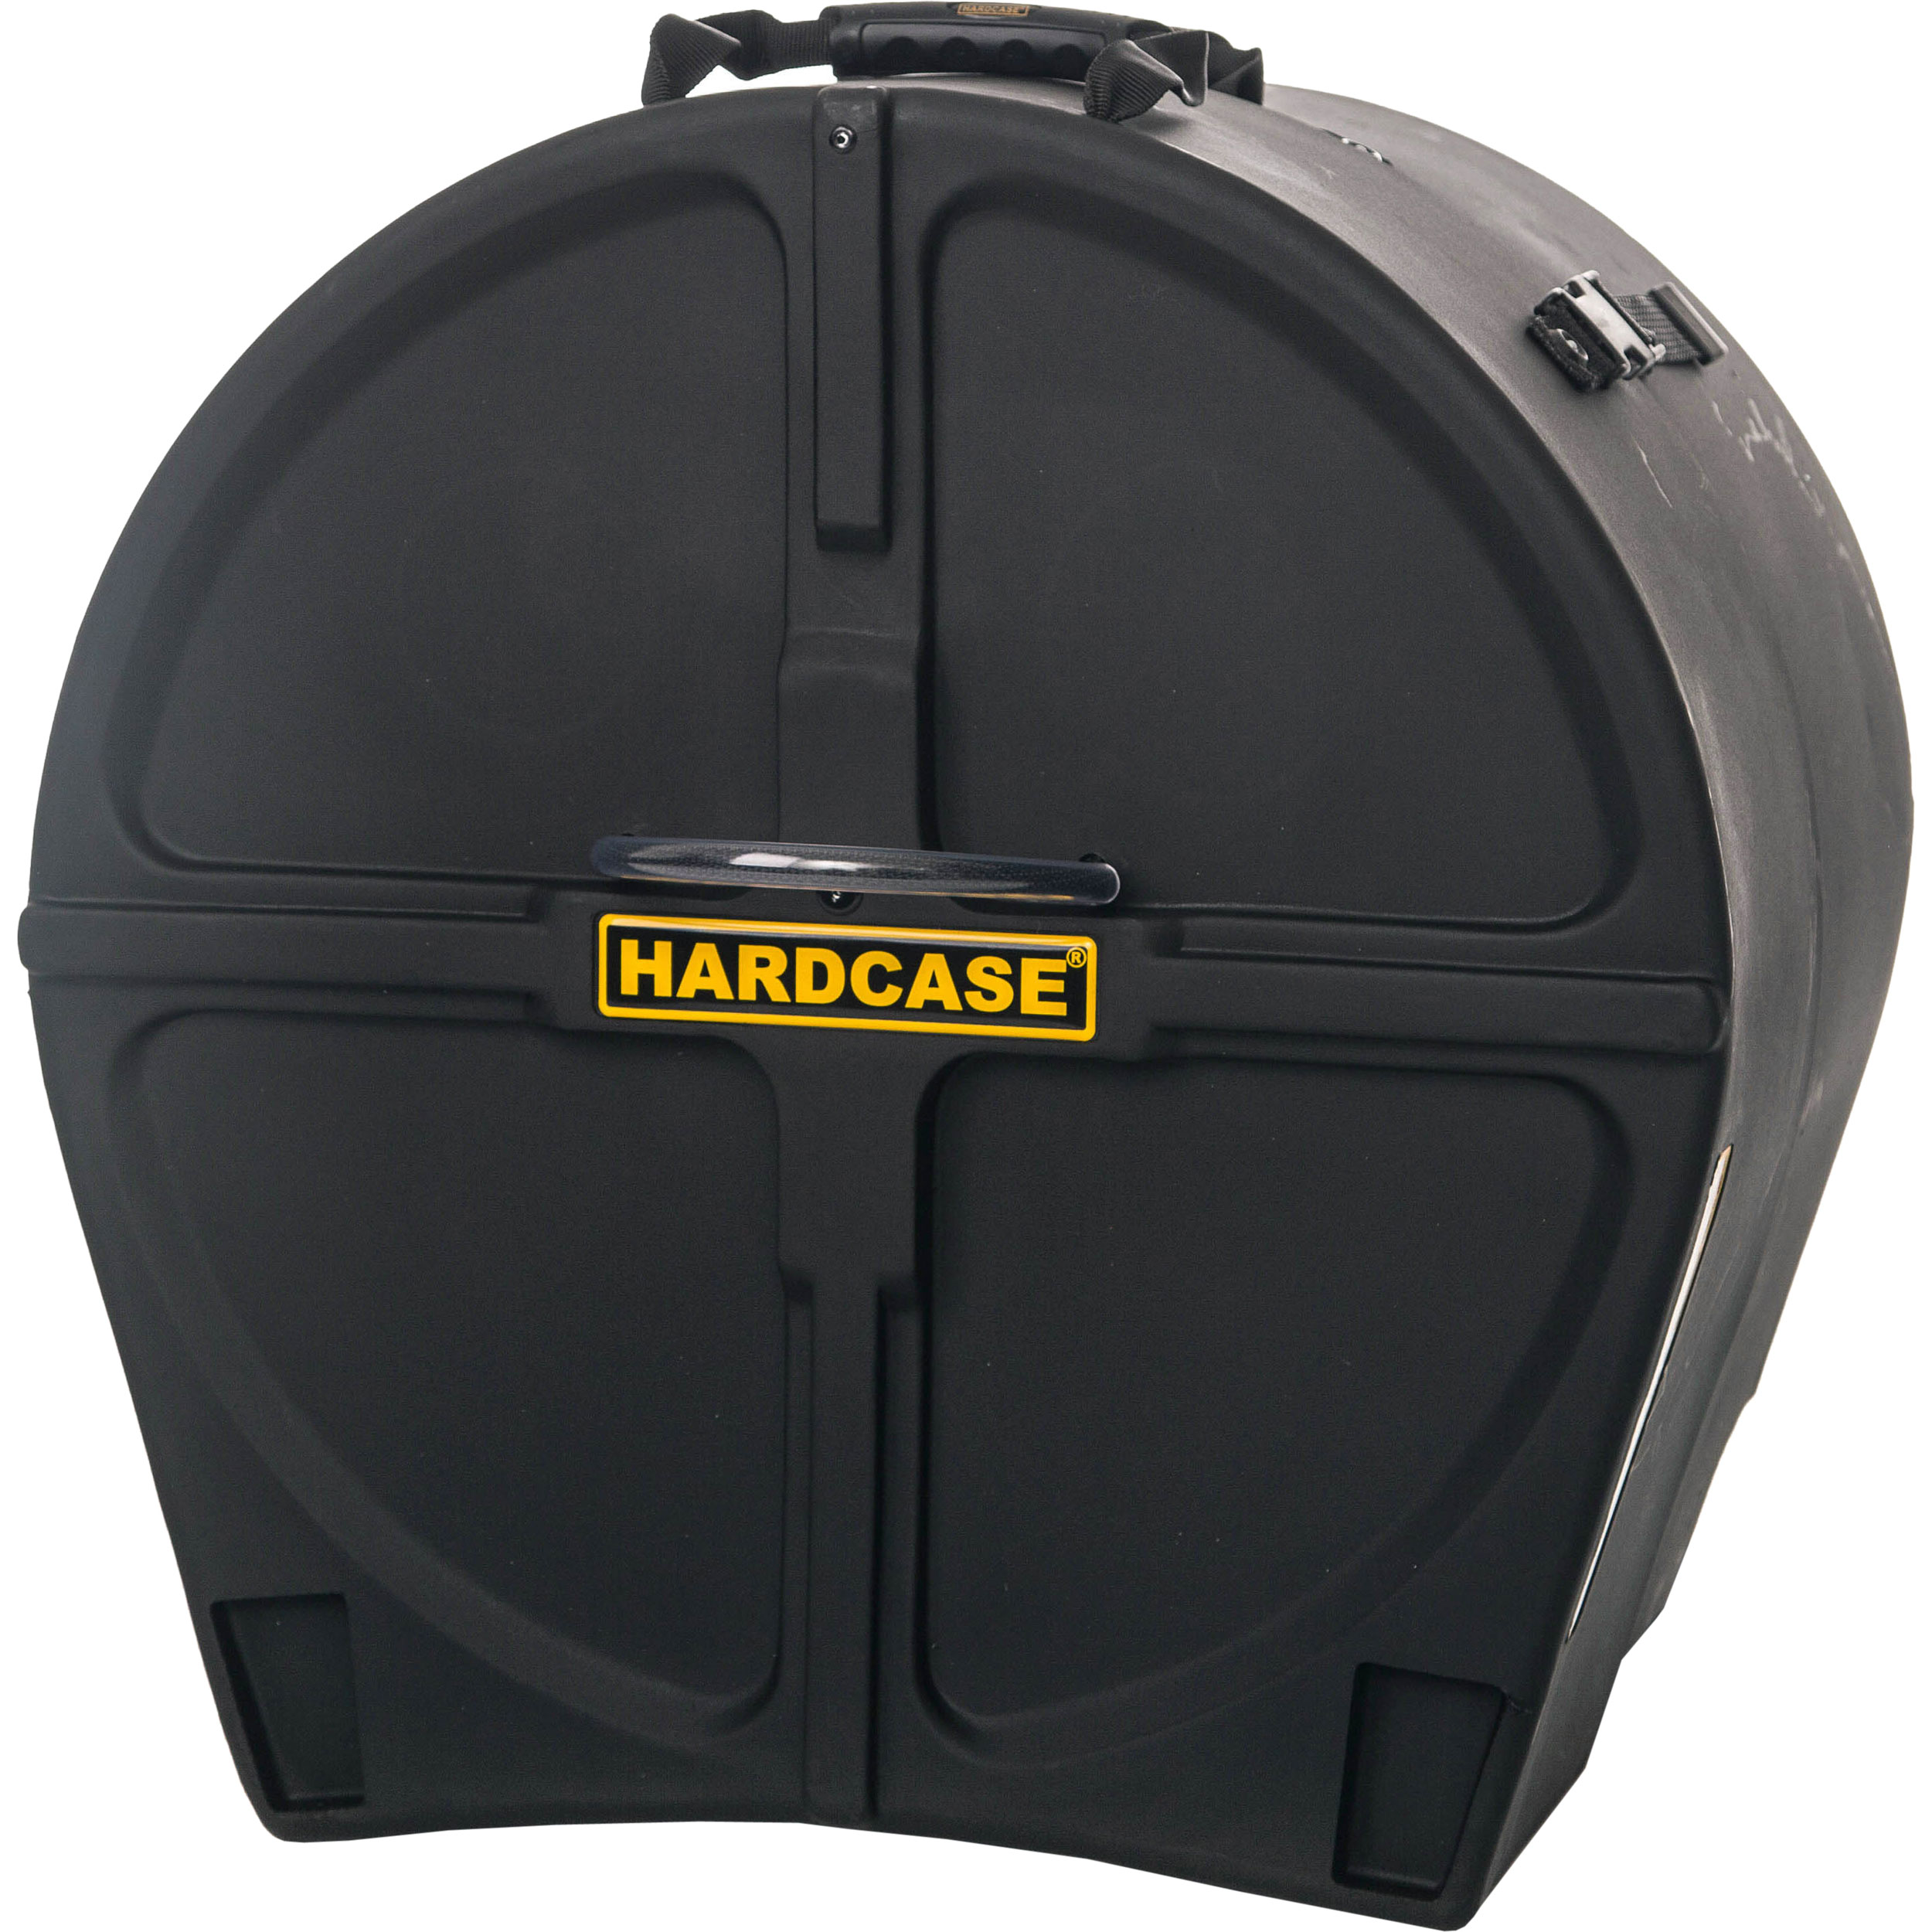 "Hardcase 18"" (Diameter) x 16-to-20"" (Deep) Bass Drum Case with Wheels"